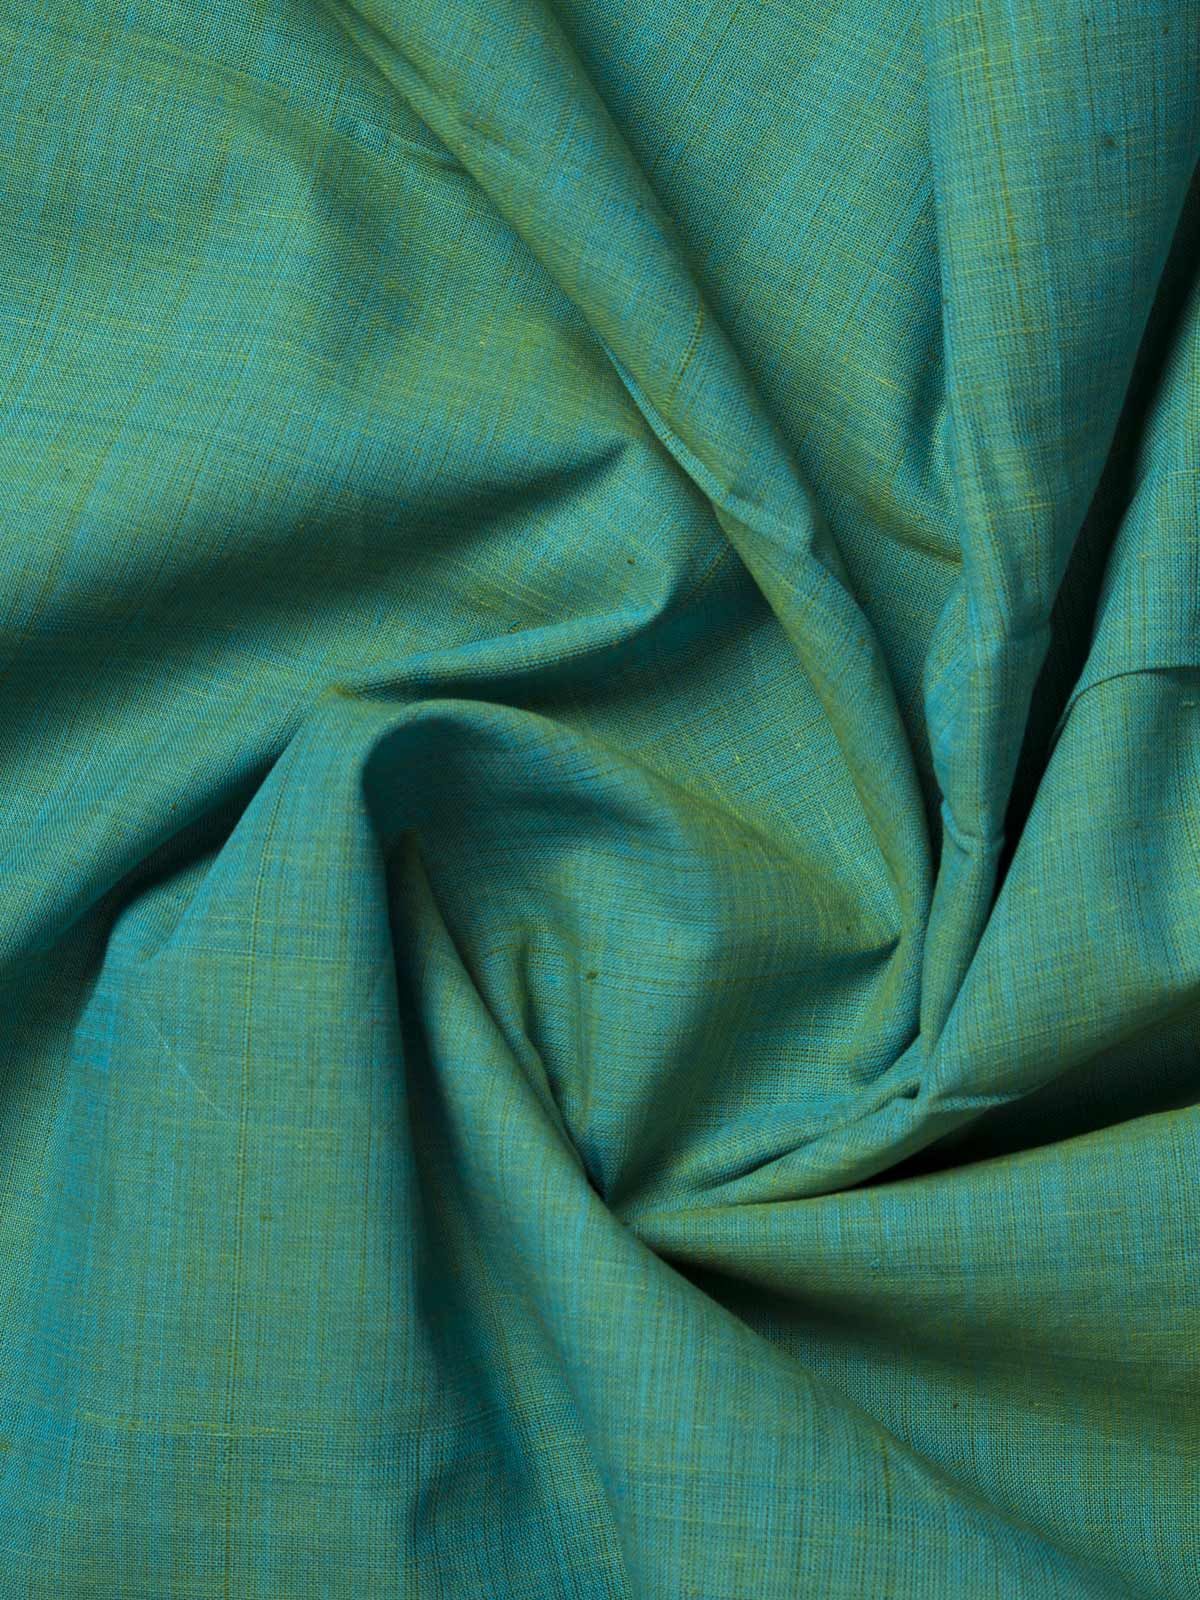 Teal color south cotton fabric